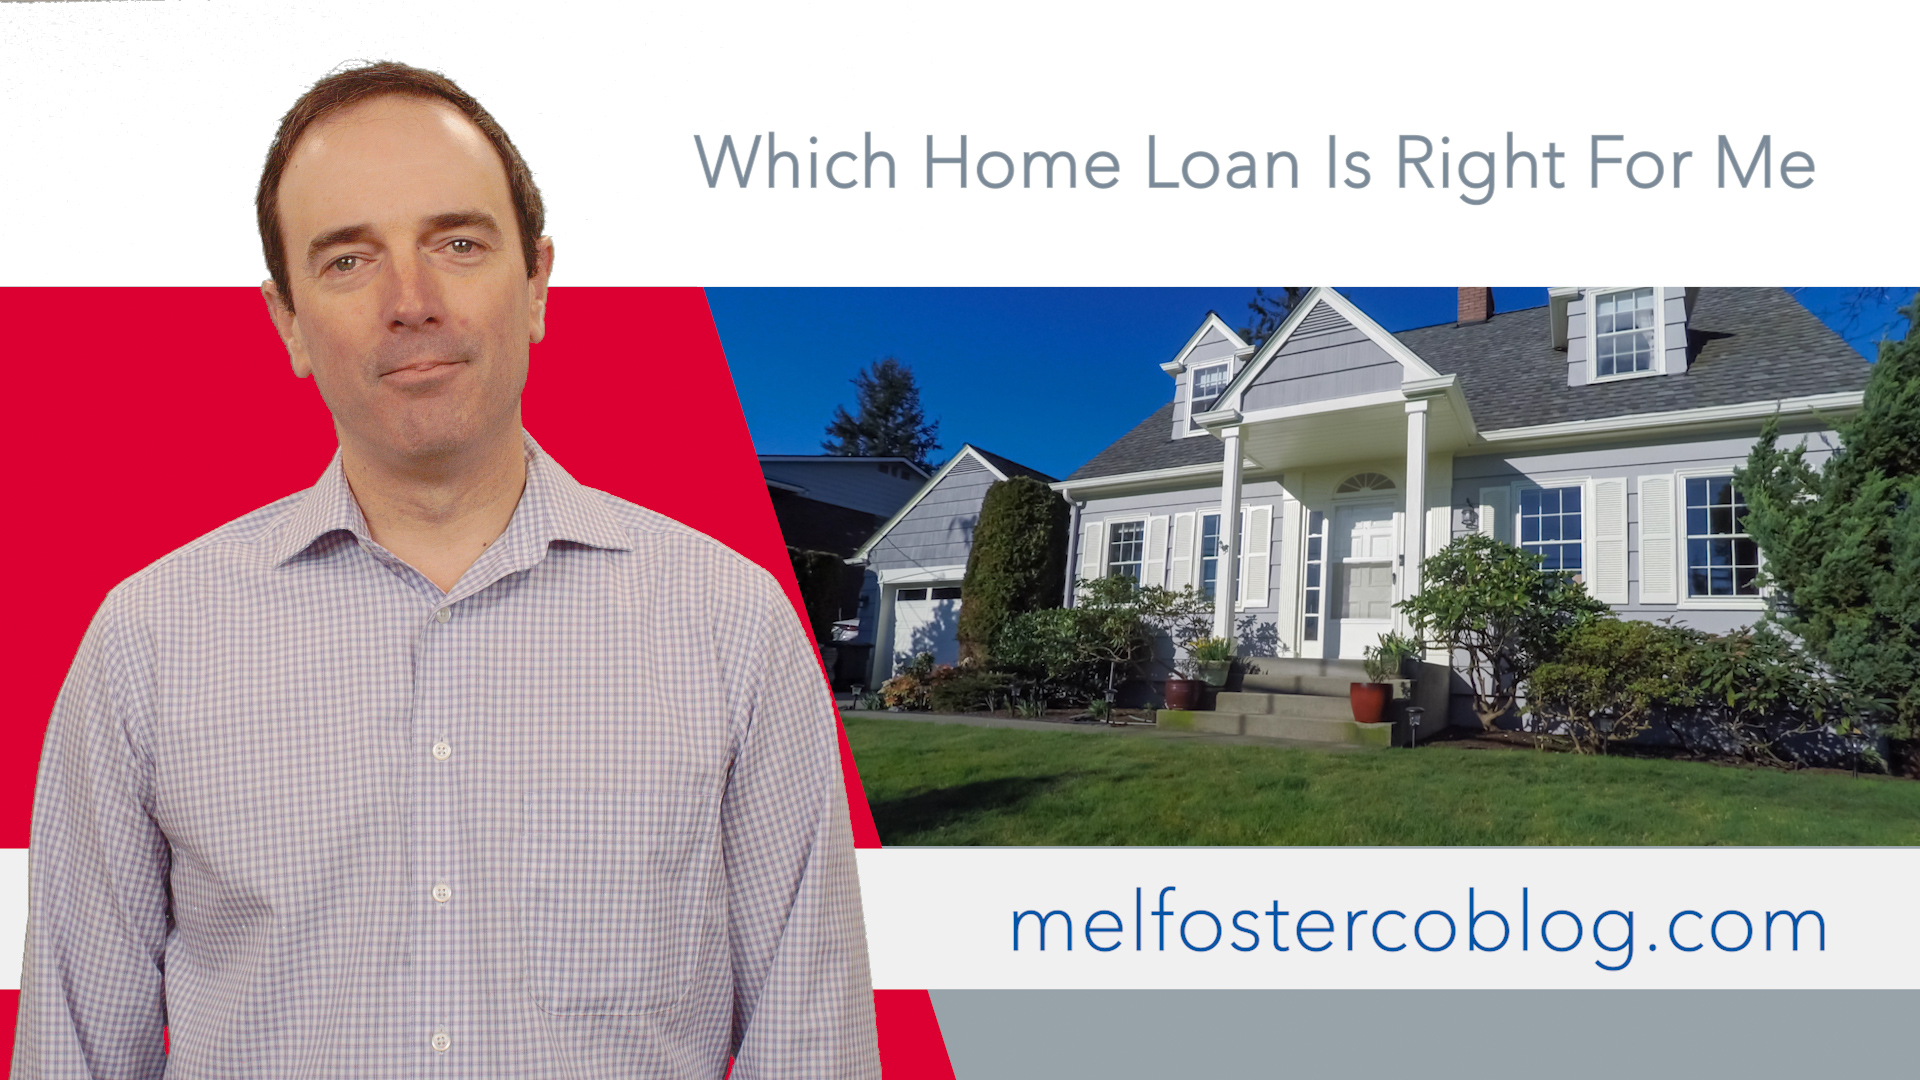 Home Loans right for me